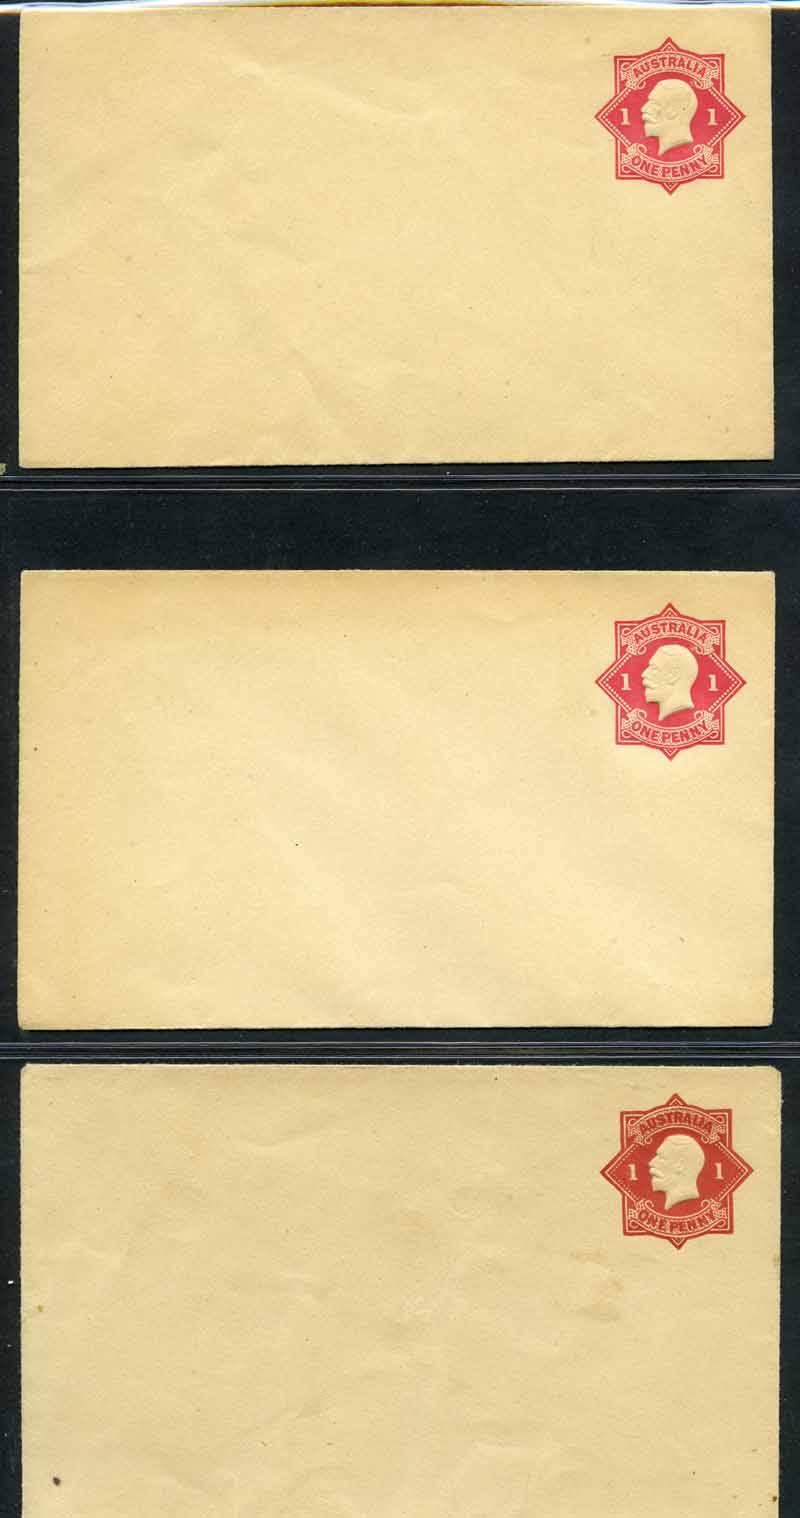 Selection of 30 mint and 7 used Embossed Envelopes from 1916 to 1965 including 1d Carmine Die I (4, one used) and Die 3 (2, one used with Left point of star broken), 1½d Black-Brown Die 2 mint, 1½d Brown Die 3 used, 2d Orange without 'Postage' used, 2d Scarlet used, THREE/HALFPENCE on 2d Red mint (2) and 1½d Green mint (9) KGV Star Embossed envelopes, TWO/PENCE on 1½d Red with blue security lining (2) and 2d Red with